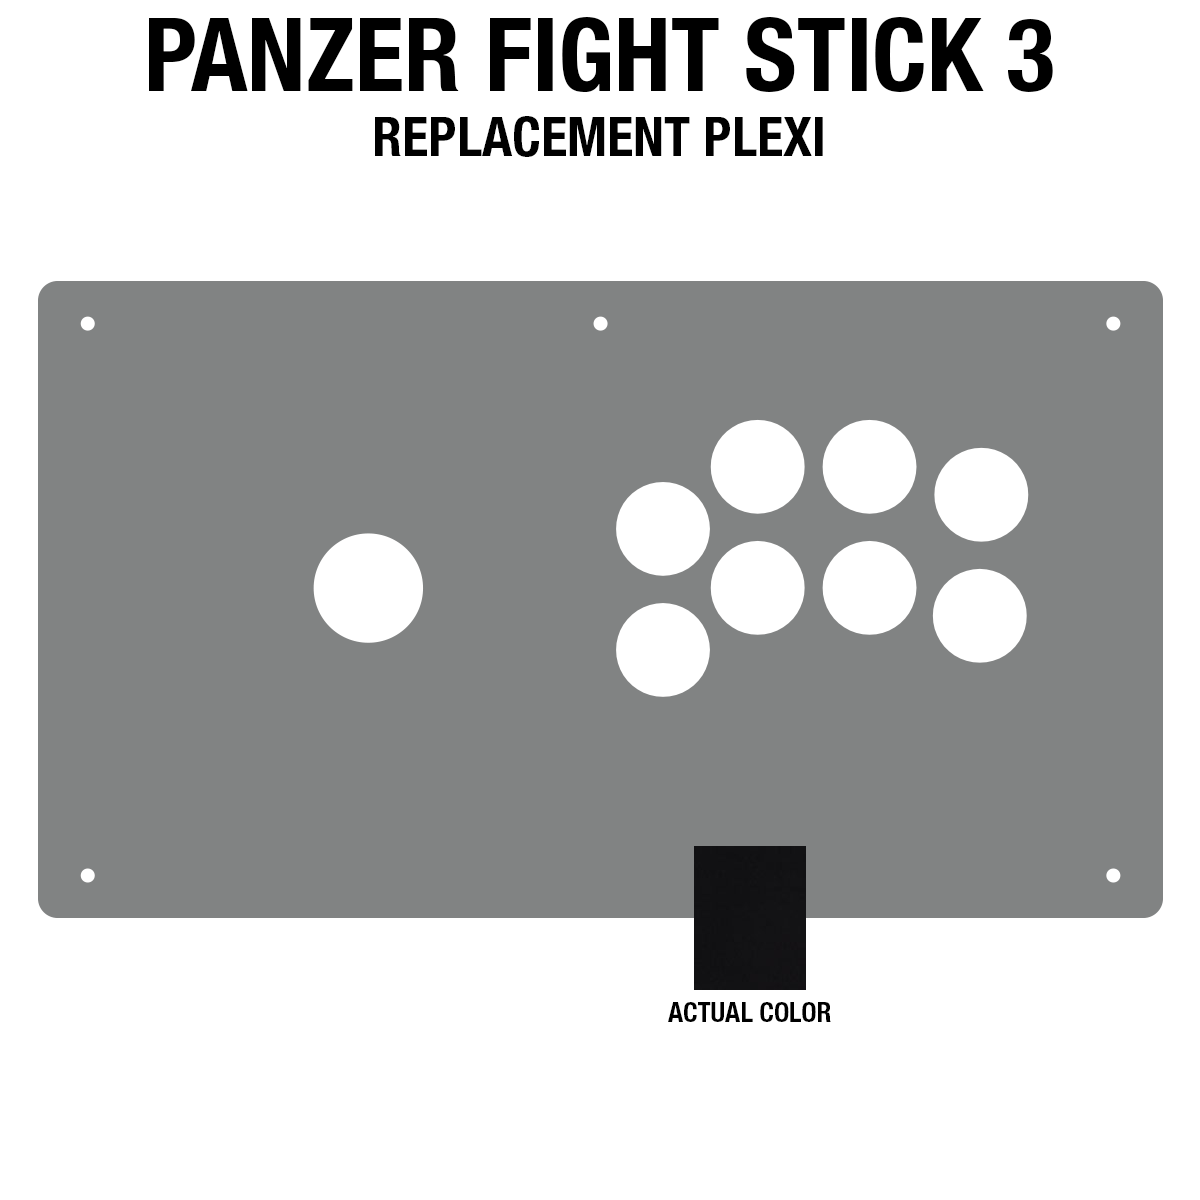 Panzer Fight Stick 3 [KOREAN EDITION] Plexi - Black Frosted (8 Buttons)